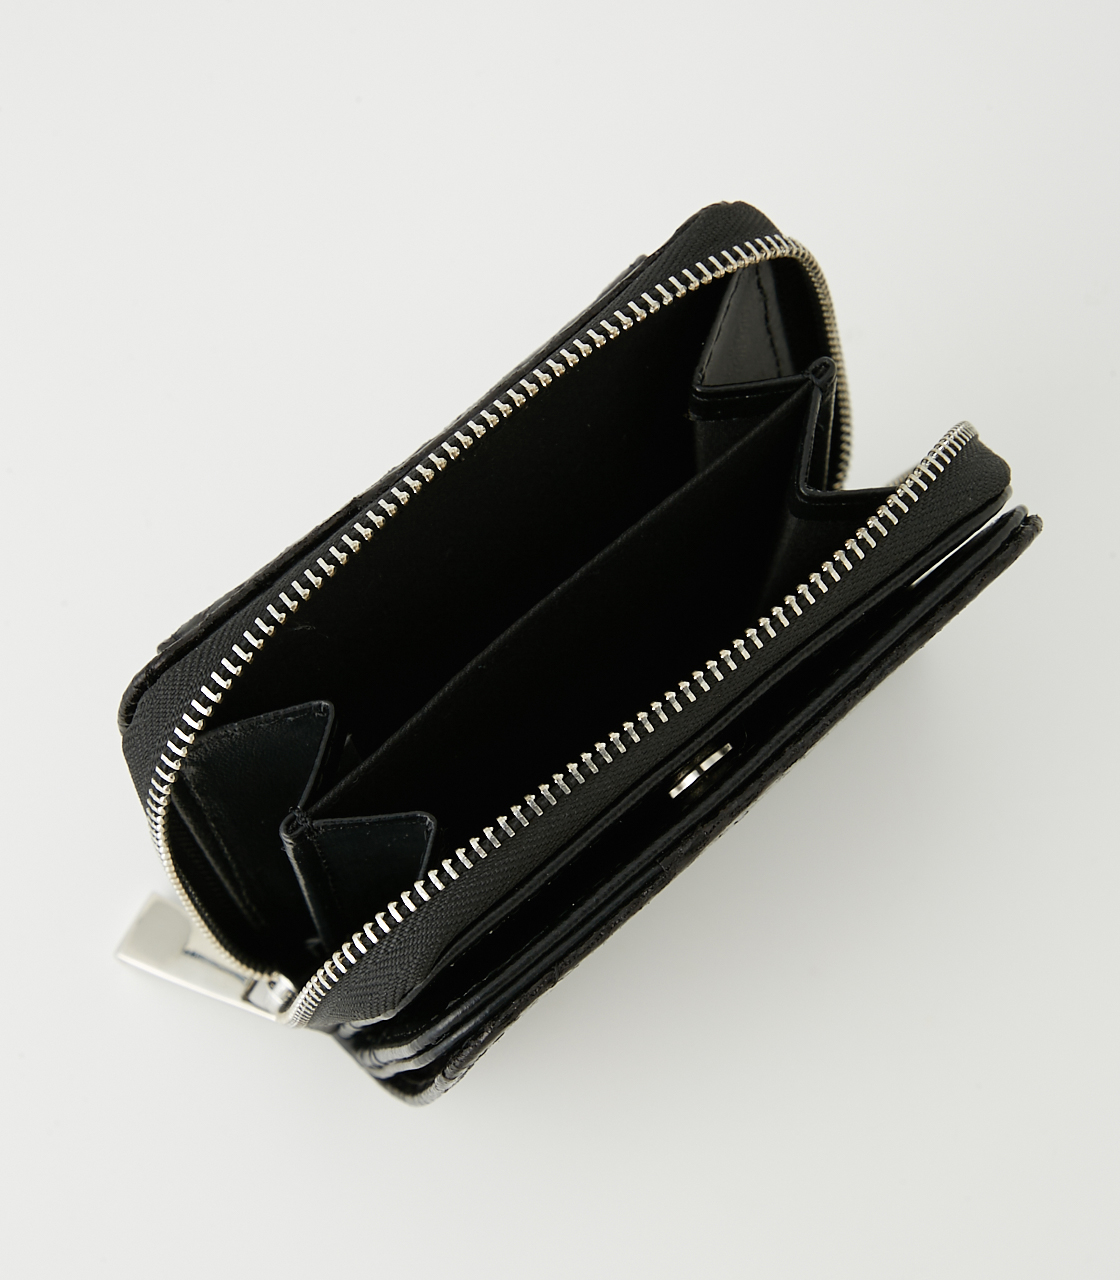 PYTHON COMPACT WALLET/パイソンコンパクトウォレット 詳細画像 柄BLK 5